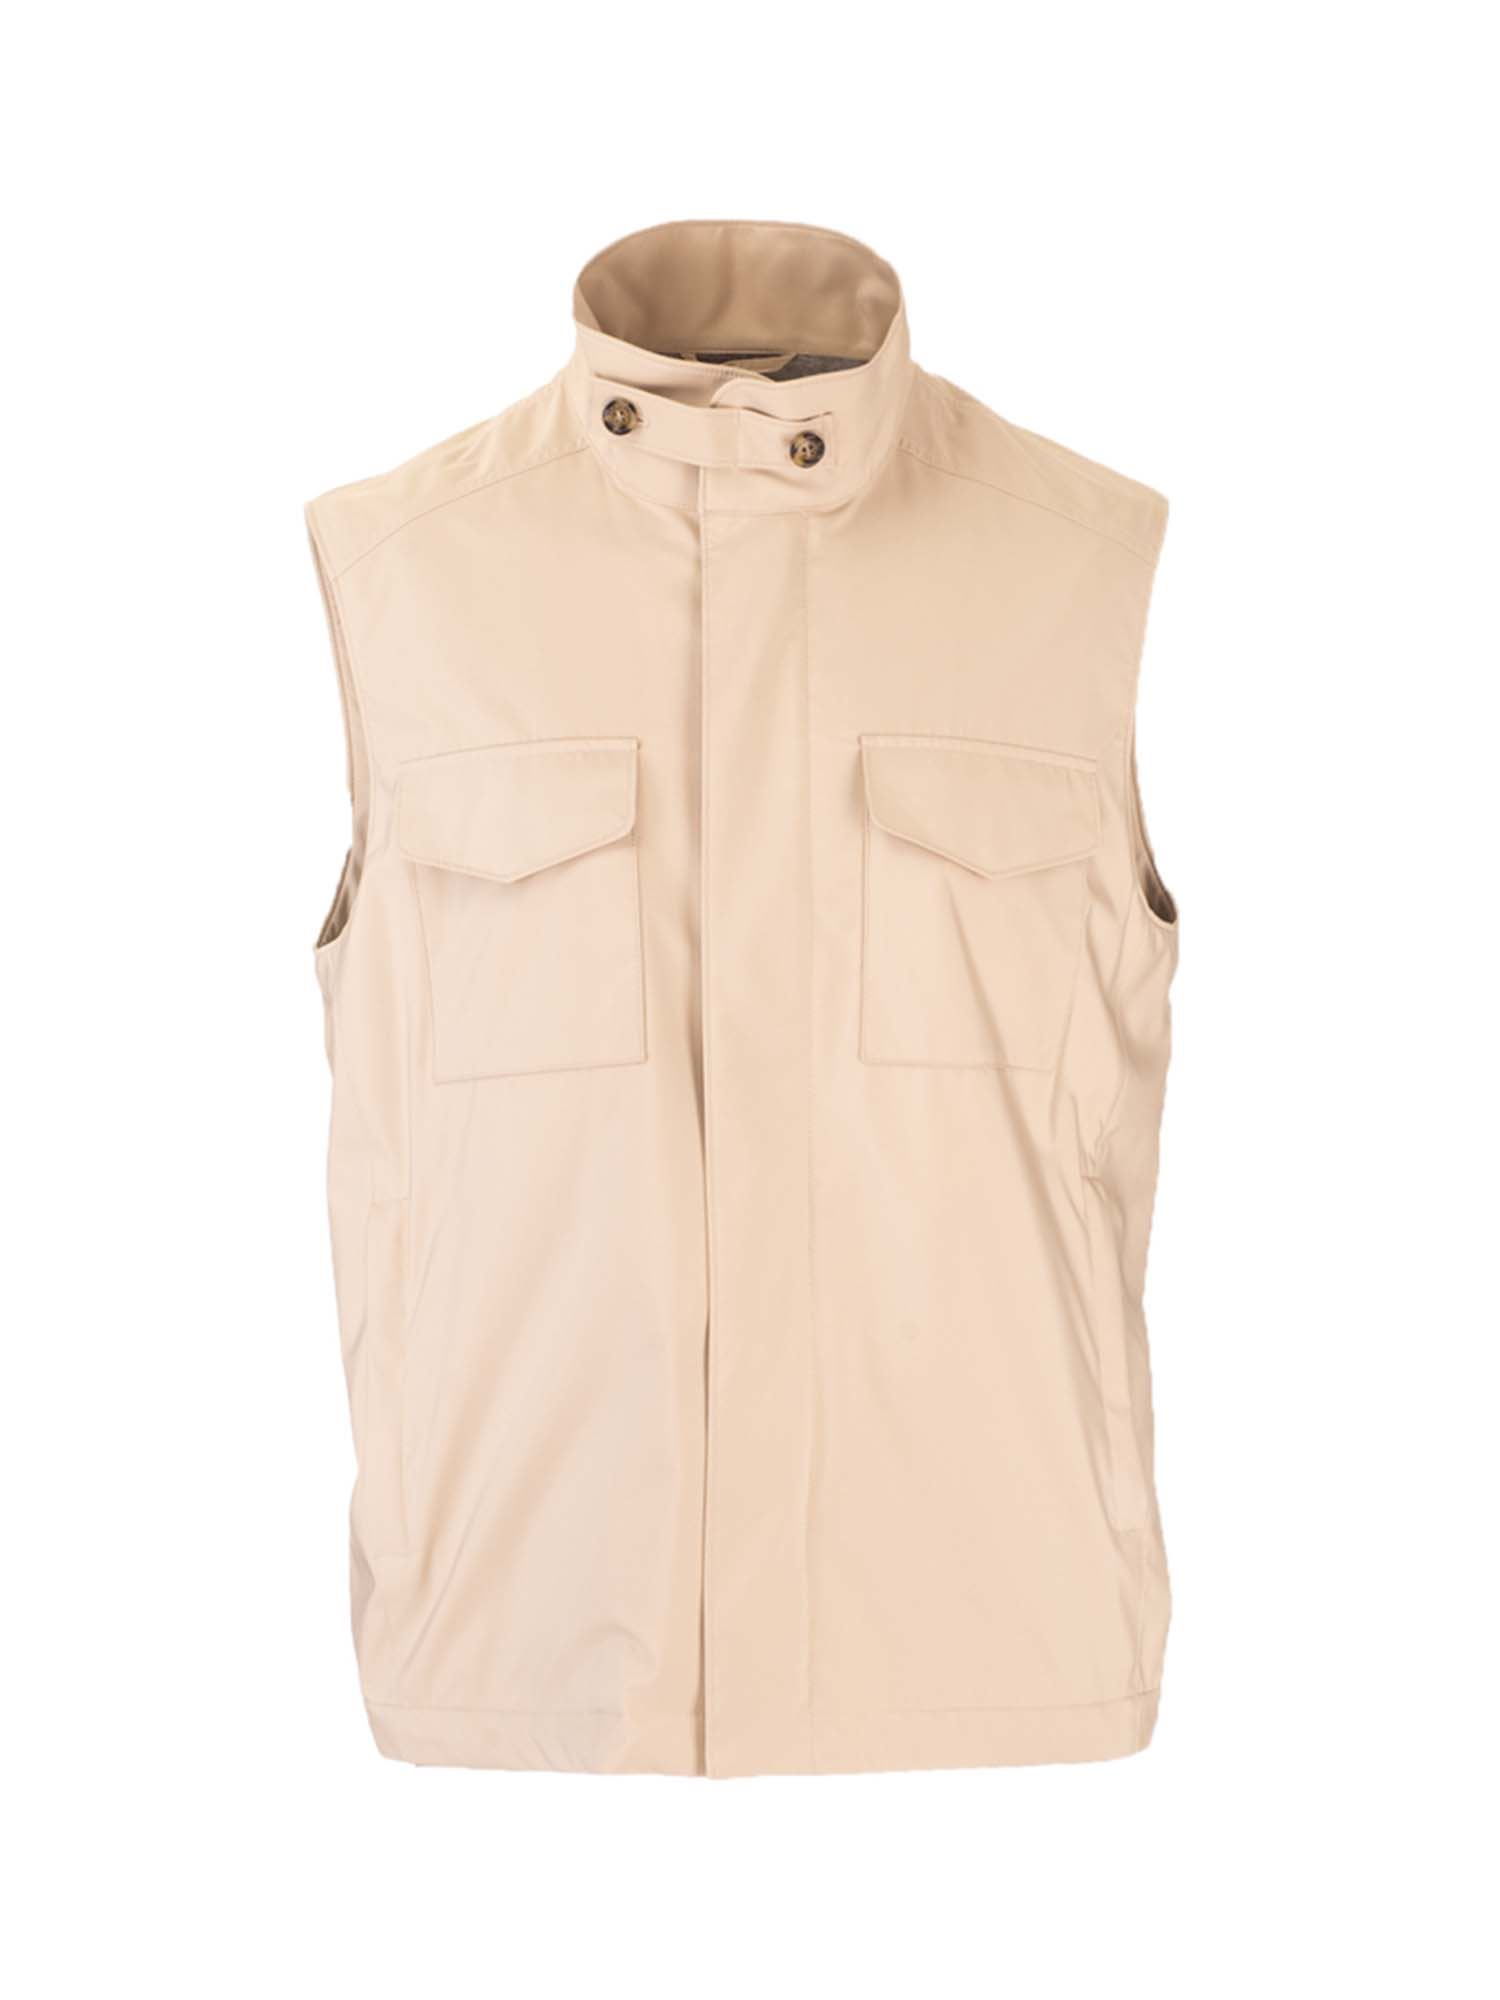 Loro Piana TRAVELER WINDMATE WAISTCOAT IN SAND SHELL